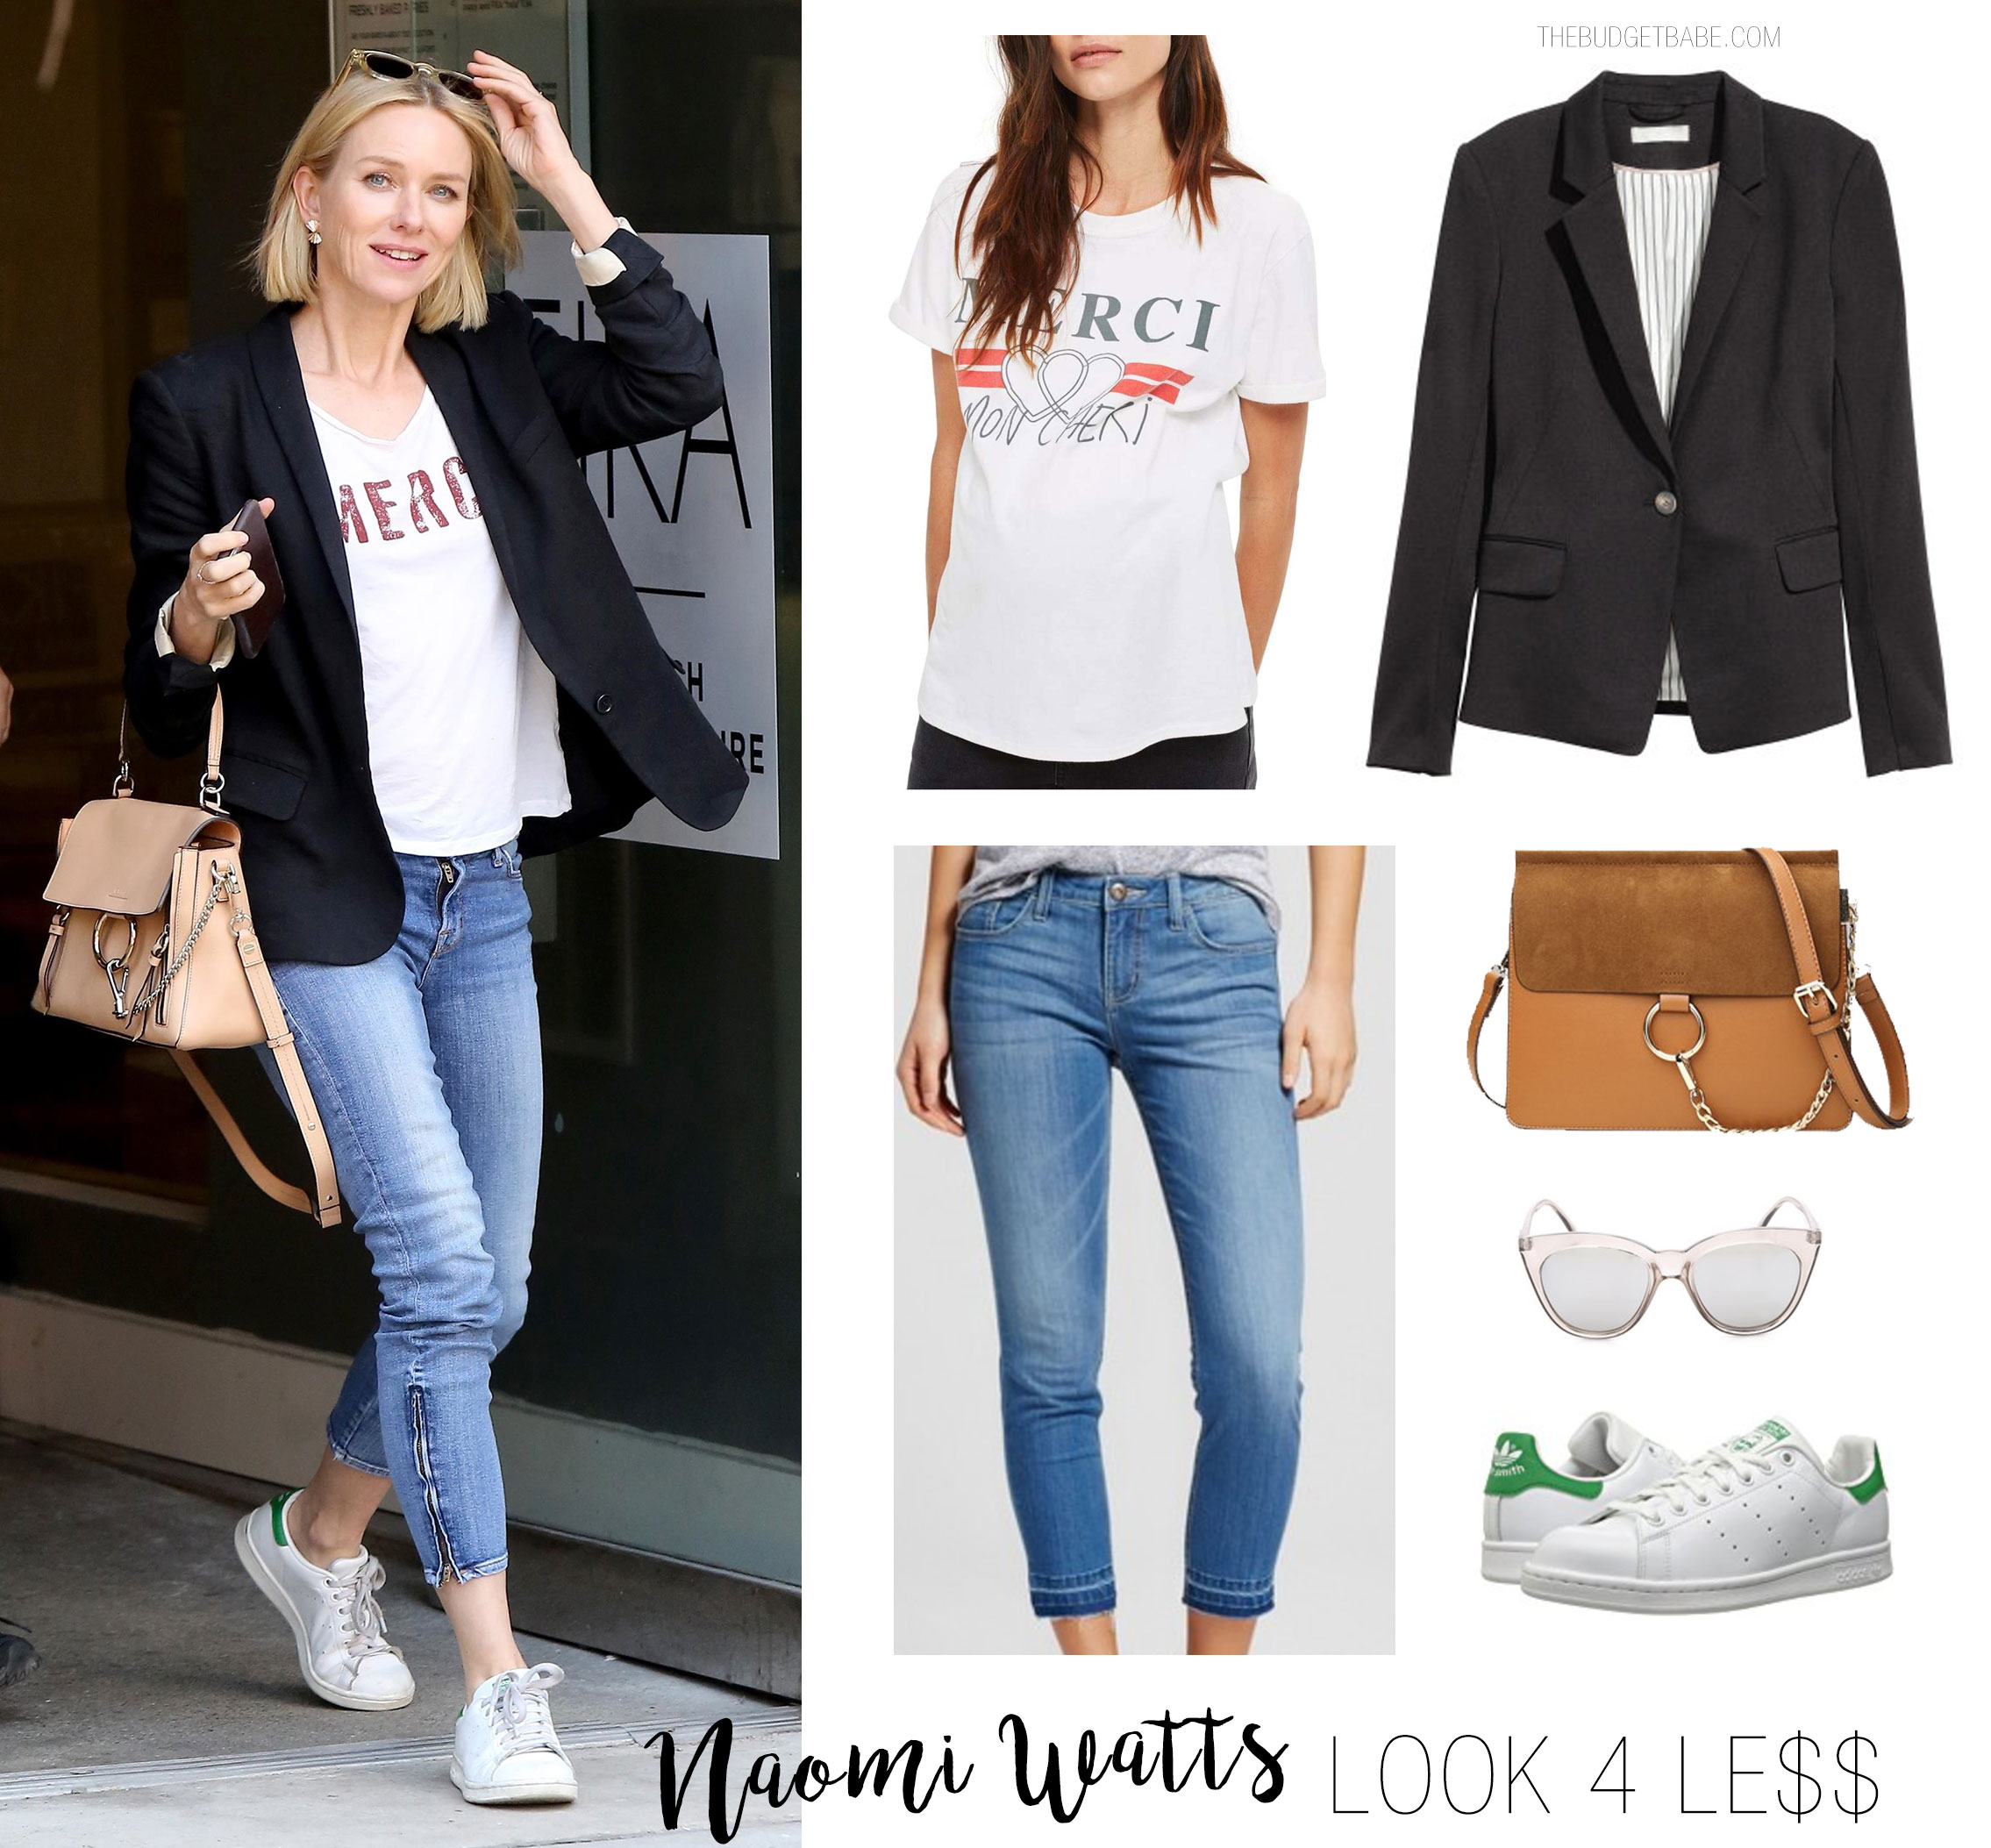 Naomi Watts looks cool and casual in a blazer, slogan t-shirt and Adidas sneakers